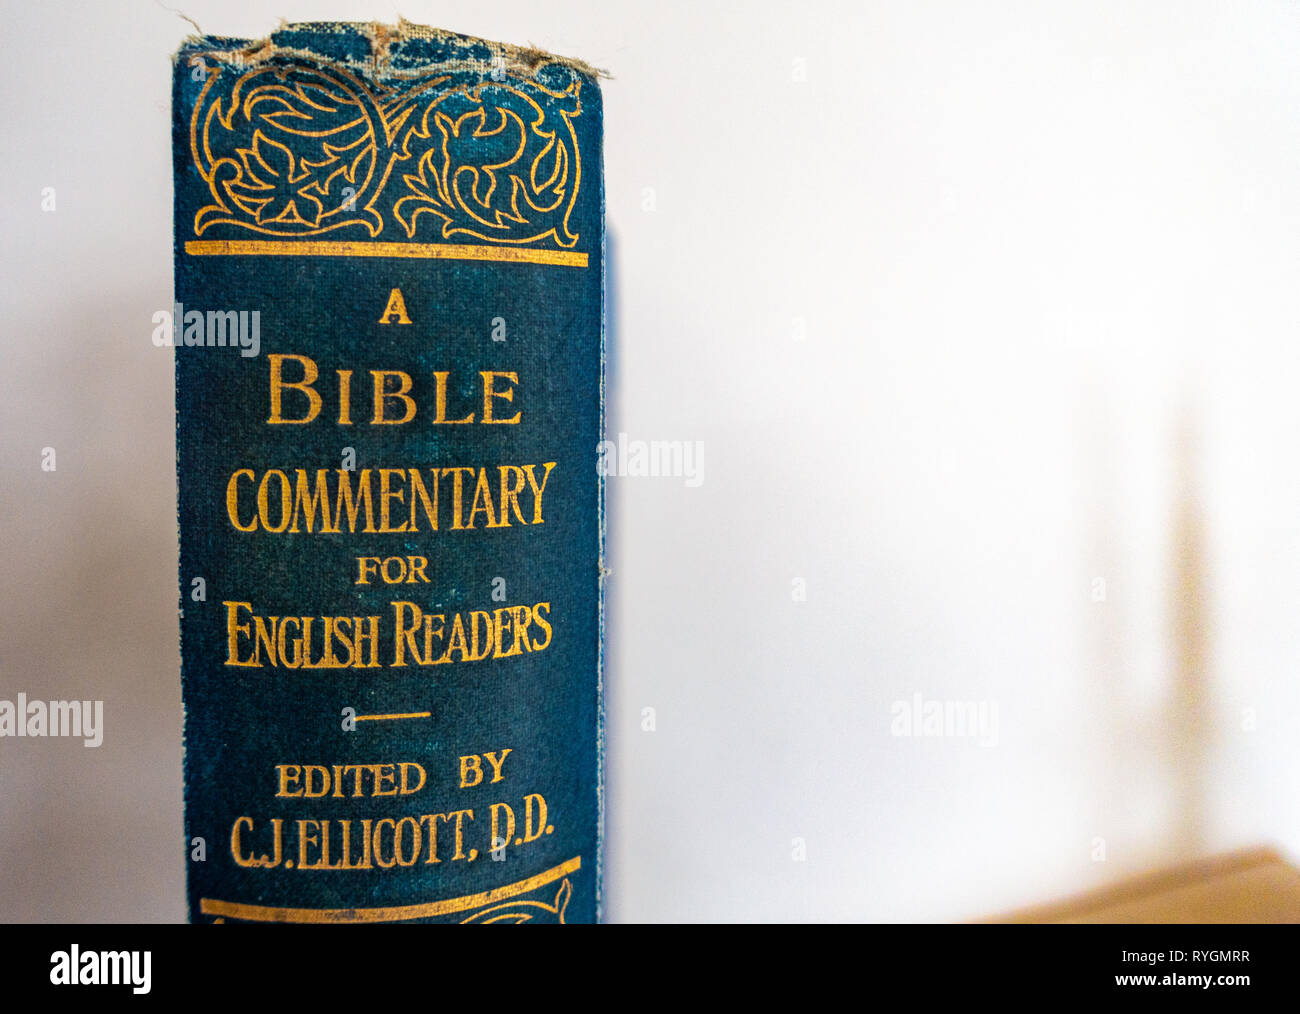 Close up of the book spine on an Antique Book of Bible